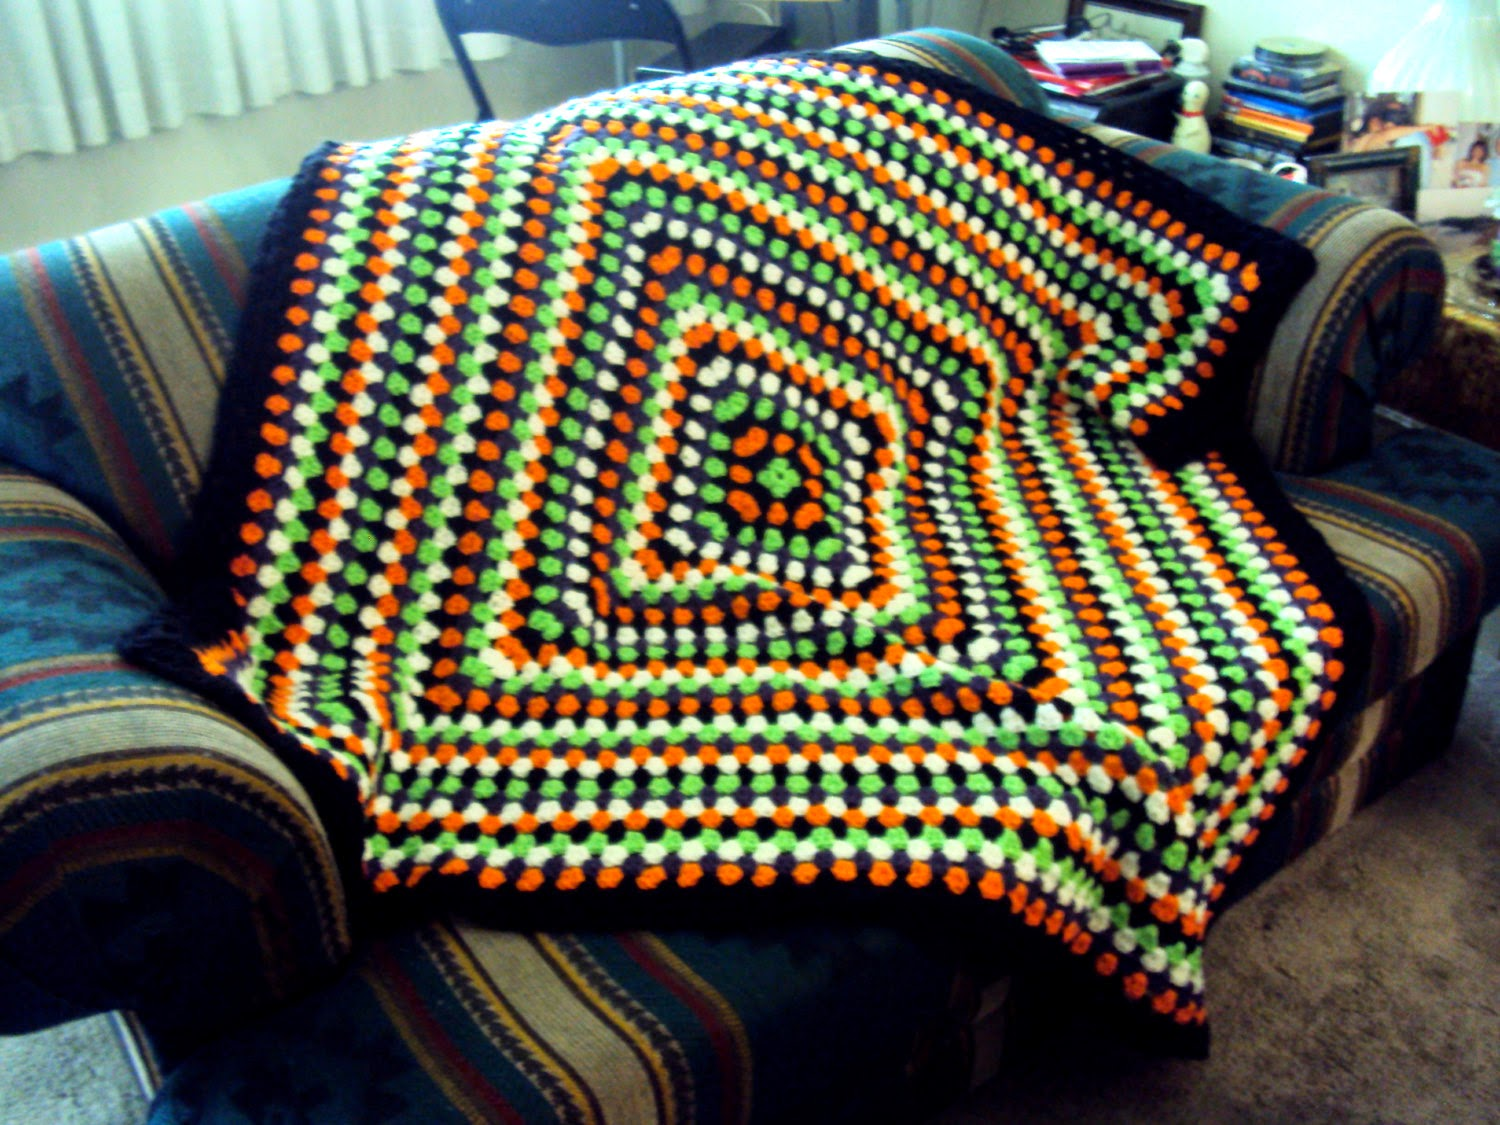 https://www.etsy.com/listing/198749431/sale-crochet-afghan-blanket-granny?ref=shop_home_active_14